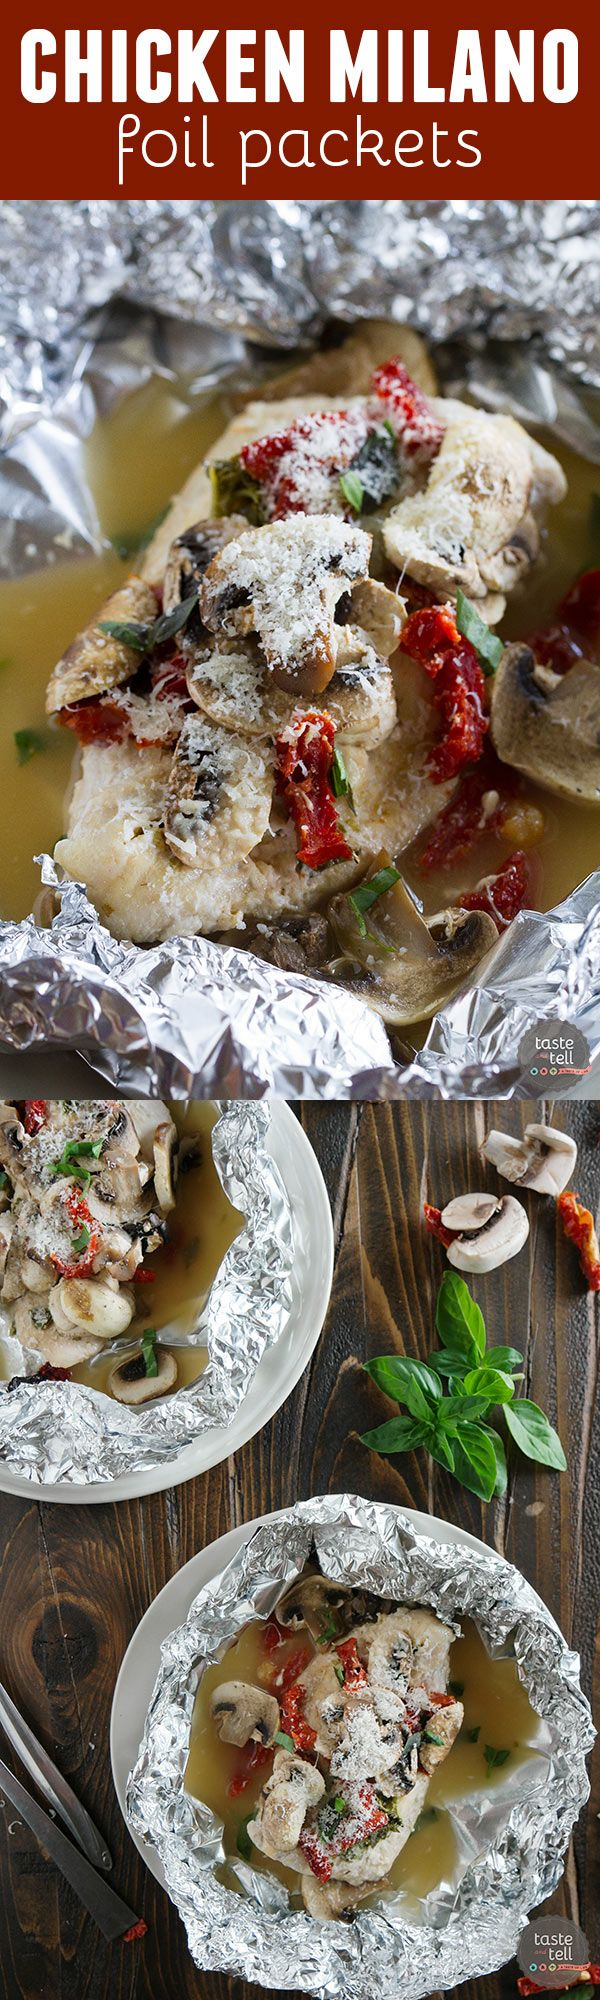 Healthy and fast, this Chicken Milano Foil Packet Recipe is great for a weeknight. The chicken is moist and flavorful, and clean up is a breeze!: